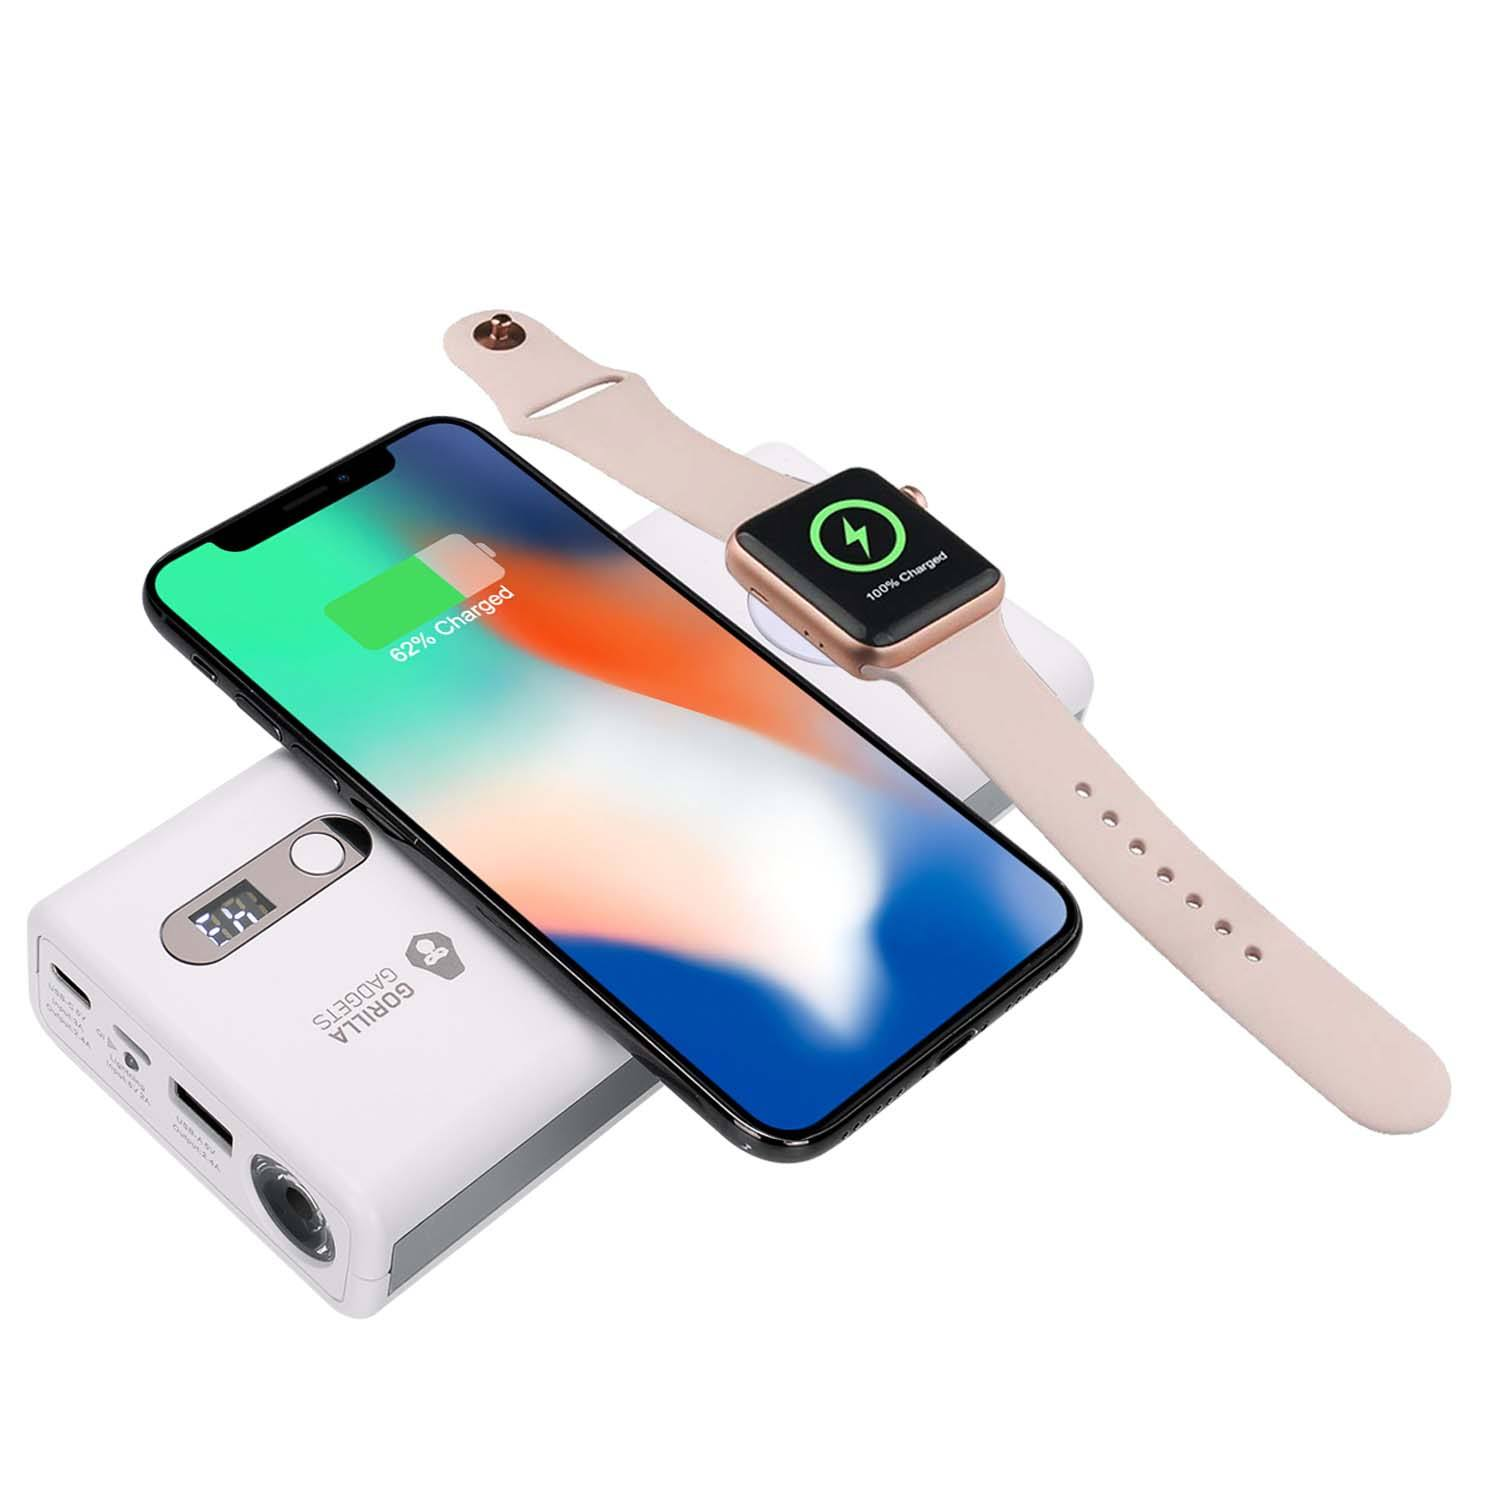 Accessories & Parts Reliable Keychain Wireless Charger For Phone Watch Portable Magnetic Charger Built In Power Bank For Iwatch Iphone Chargers